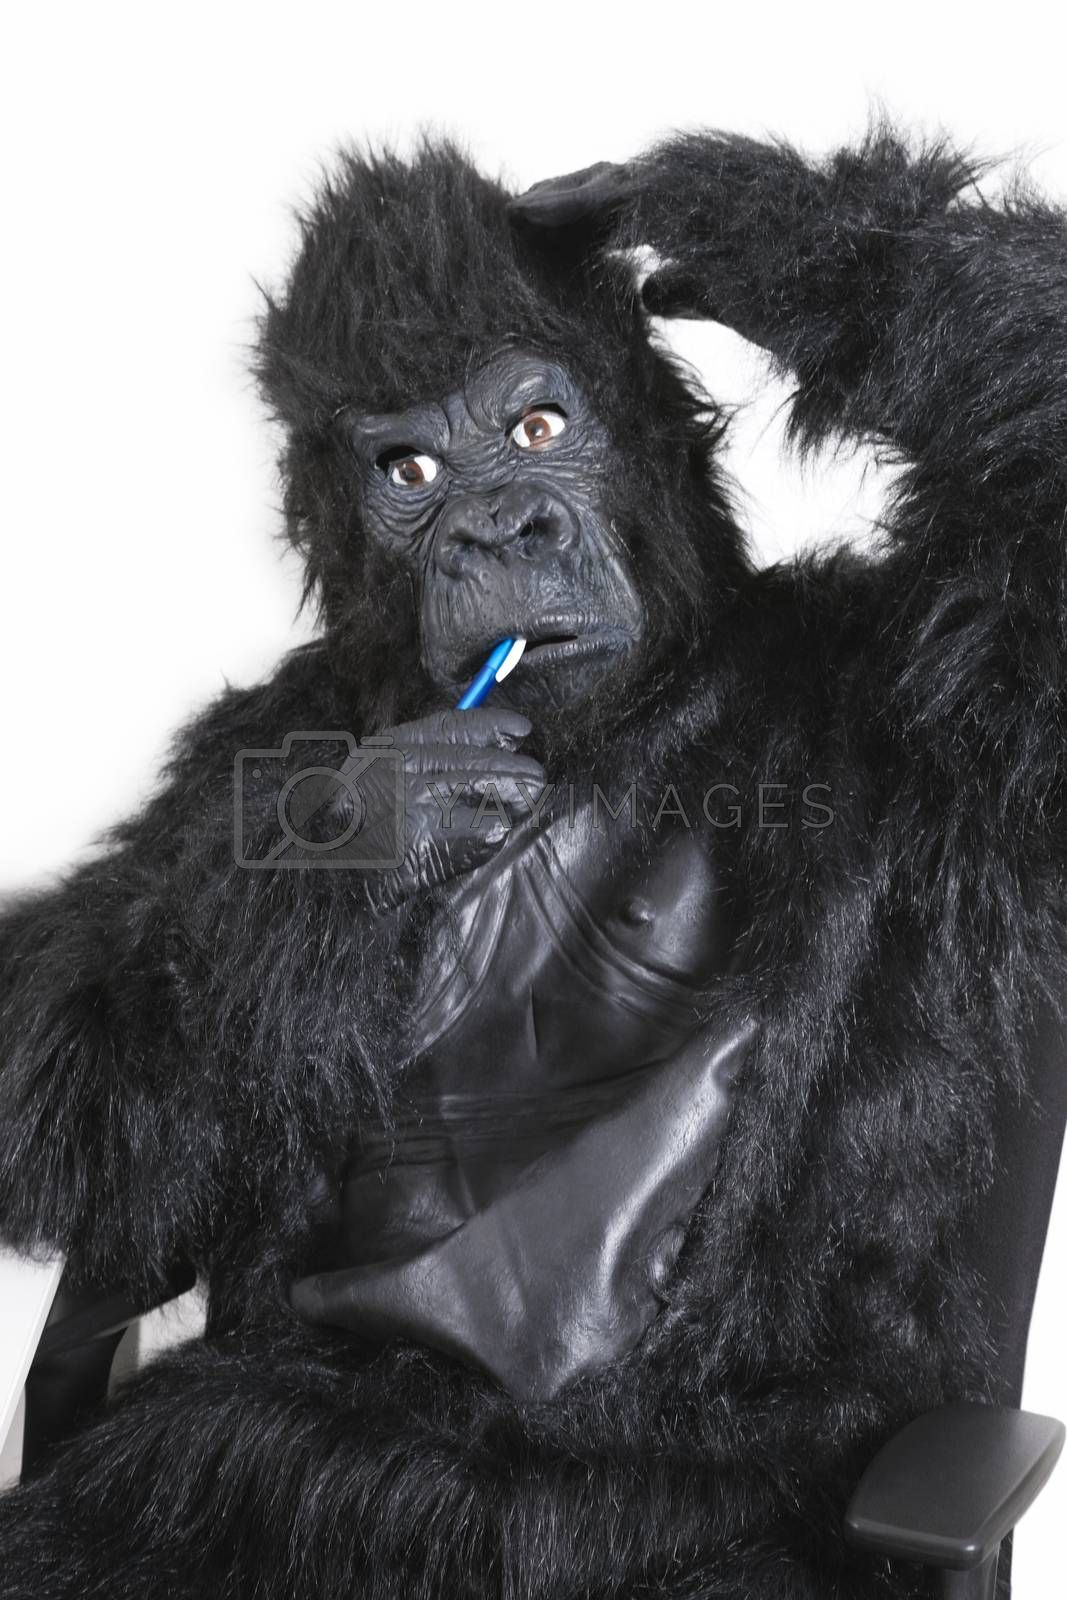 Portrait of young man in gorilla costume brushing teeth against white background